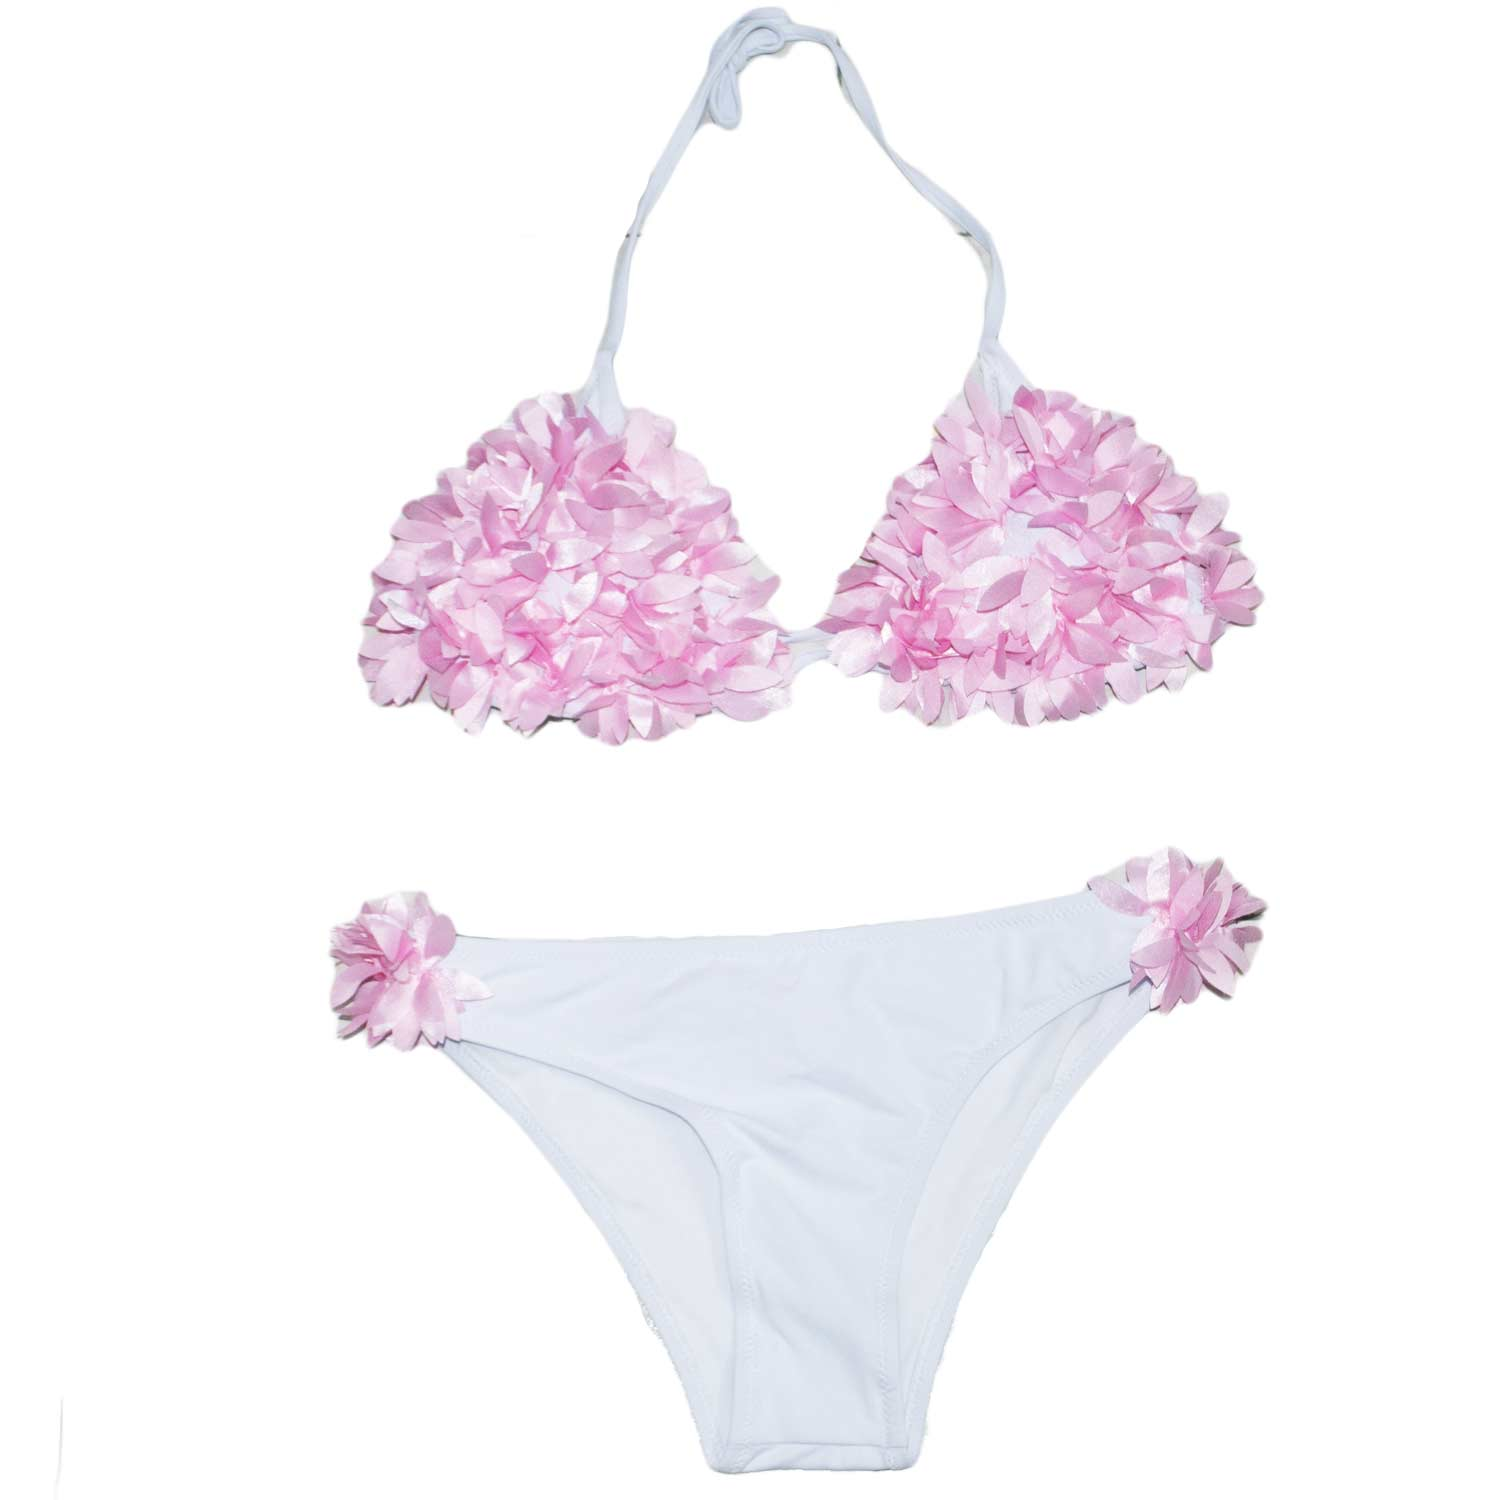 Costume accessori donna art:es2459 estivo summer fantasia bianco applicazioni floreali rosa made in italy.